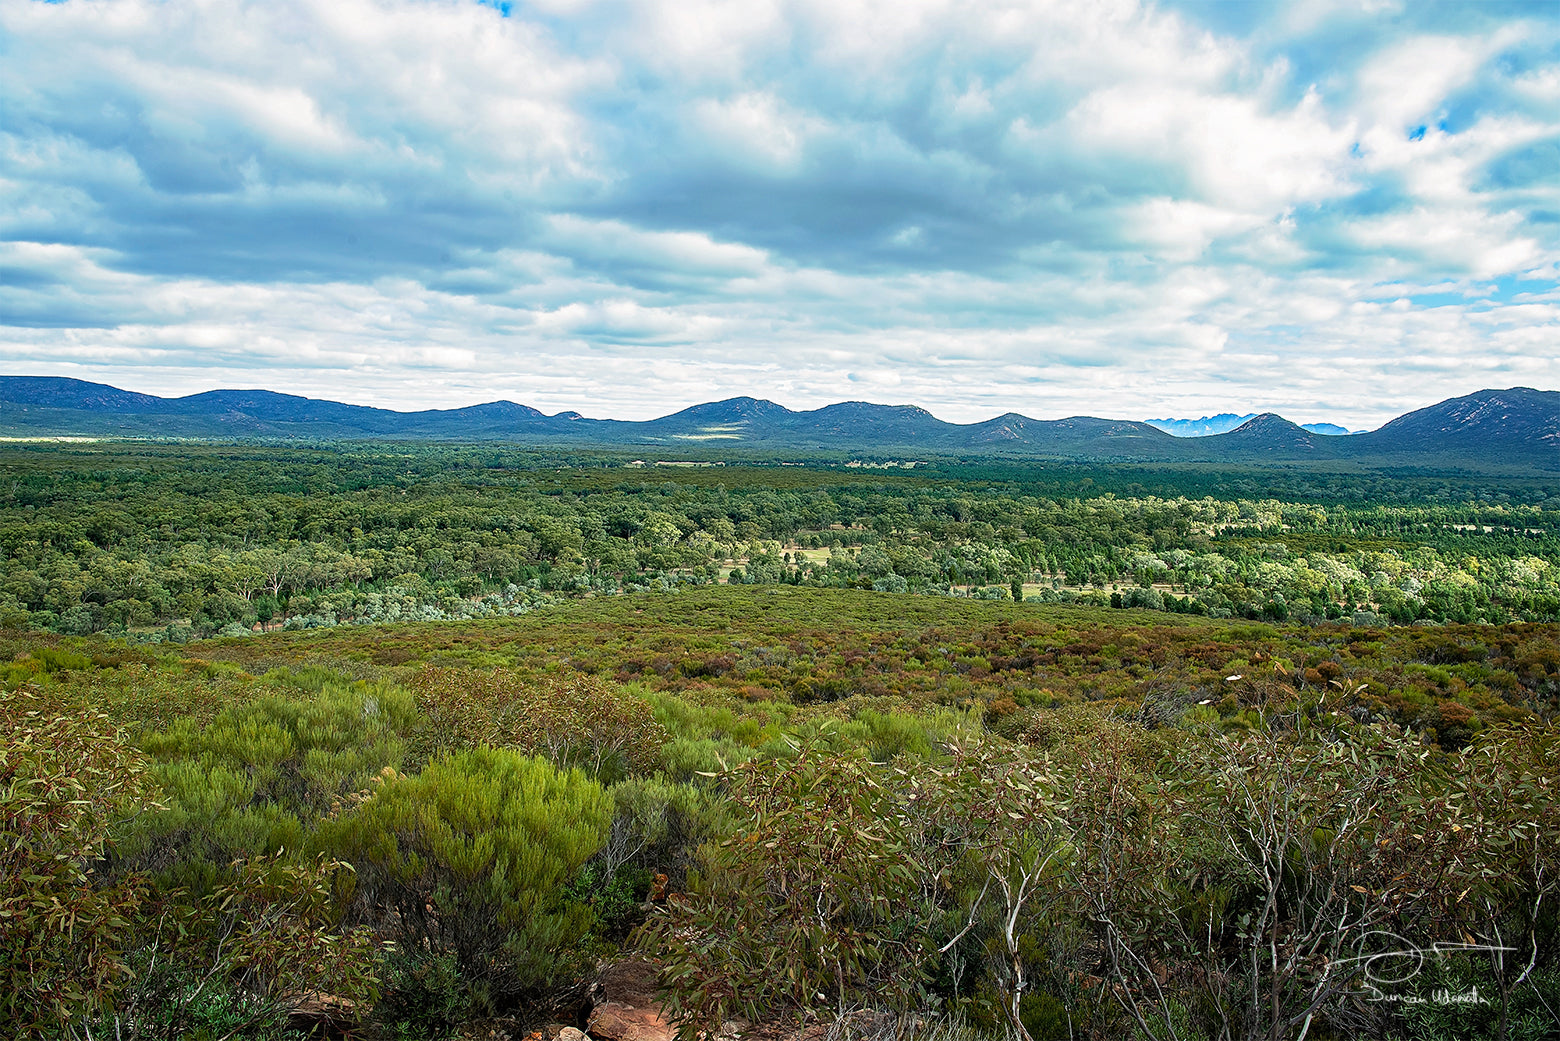 South Australia - Wilpena Pound